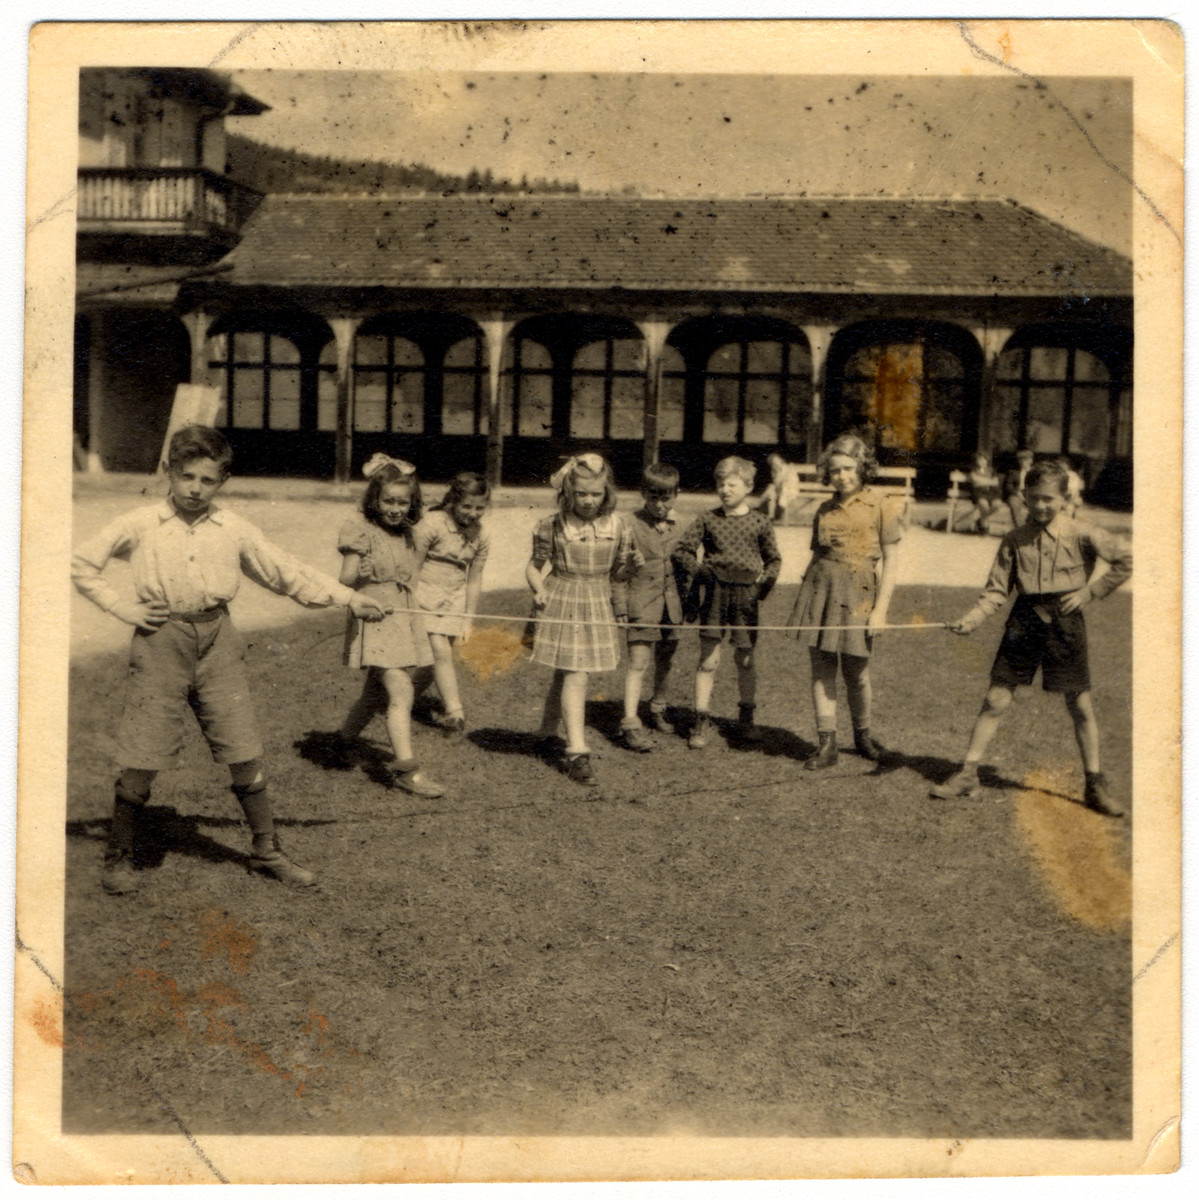 School children play a rope game in the Feldafing displaced persons' camp.  Among those pictured holding the rope are the Shmulevitch brothers, then left to right are Sally Bass, Rifka Lifschitz, Ada Rosenberg, others unidentified.